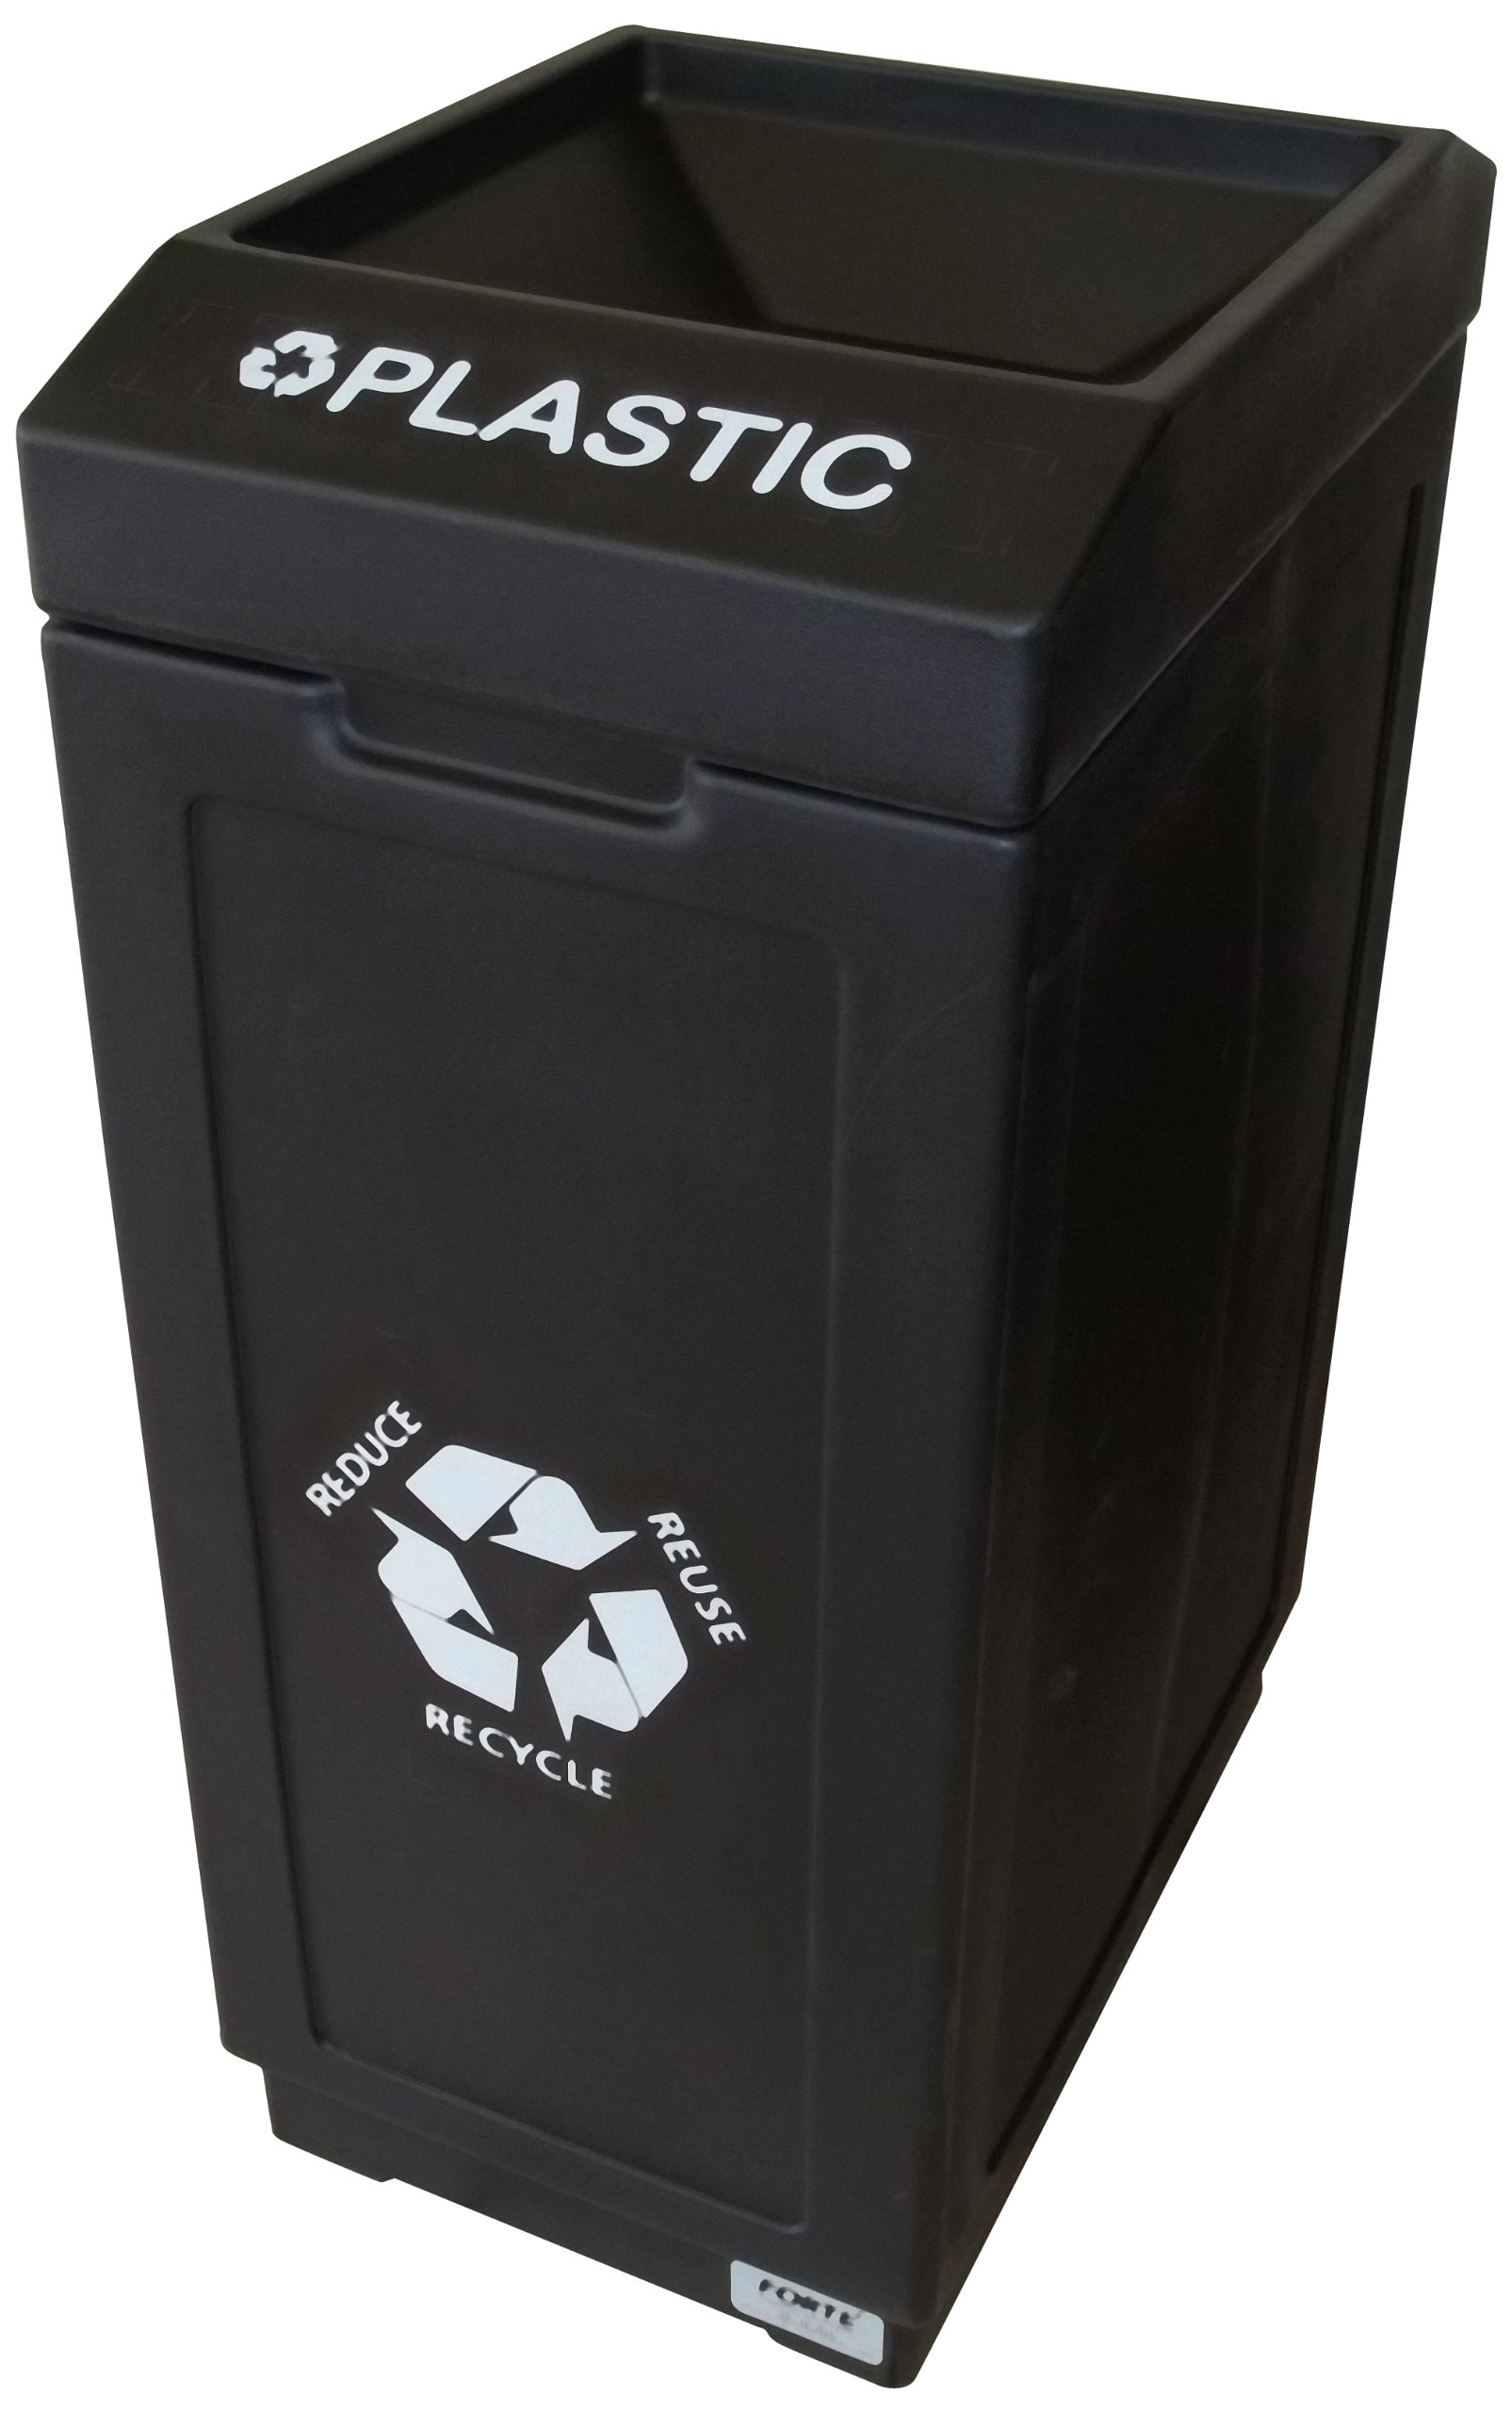 Forte Products 8001844 Open Top Recycle Bin with Plastic Graphic, 14.5'' L x 21.5'' W x 36'' H, Black